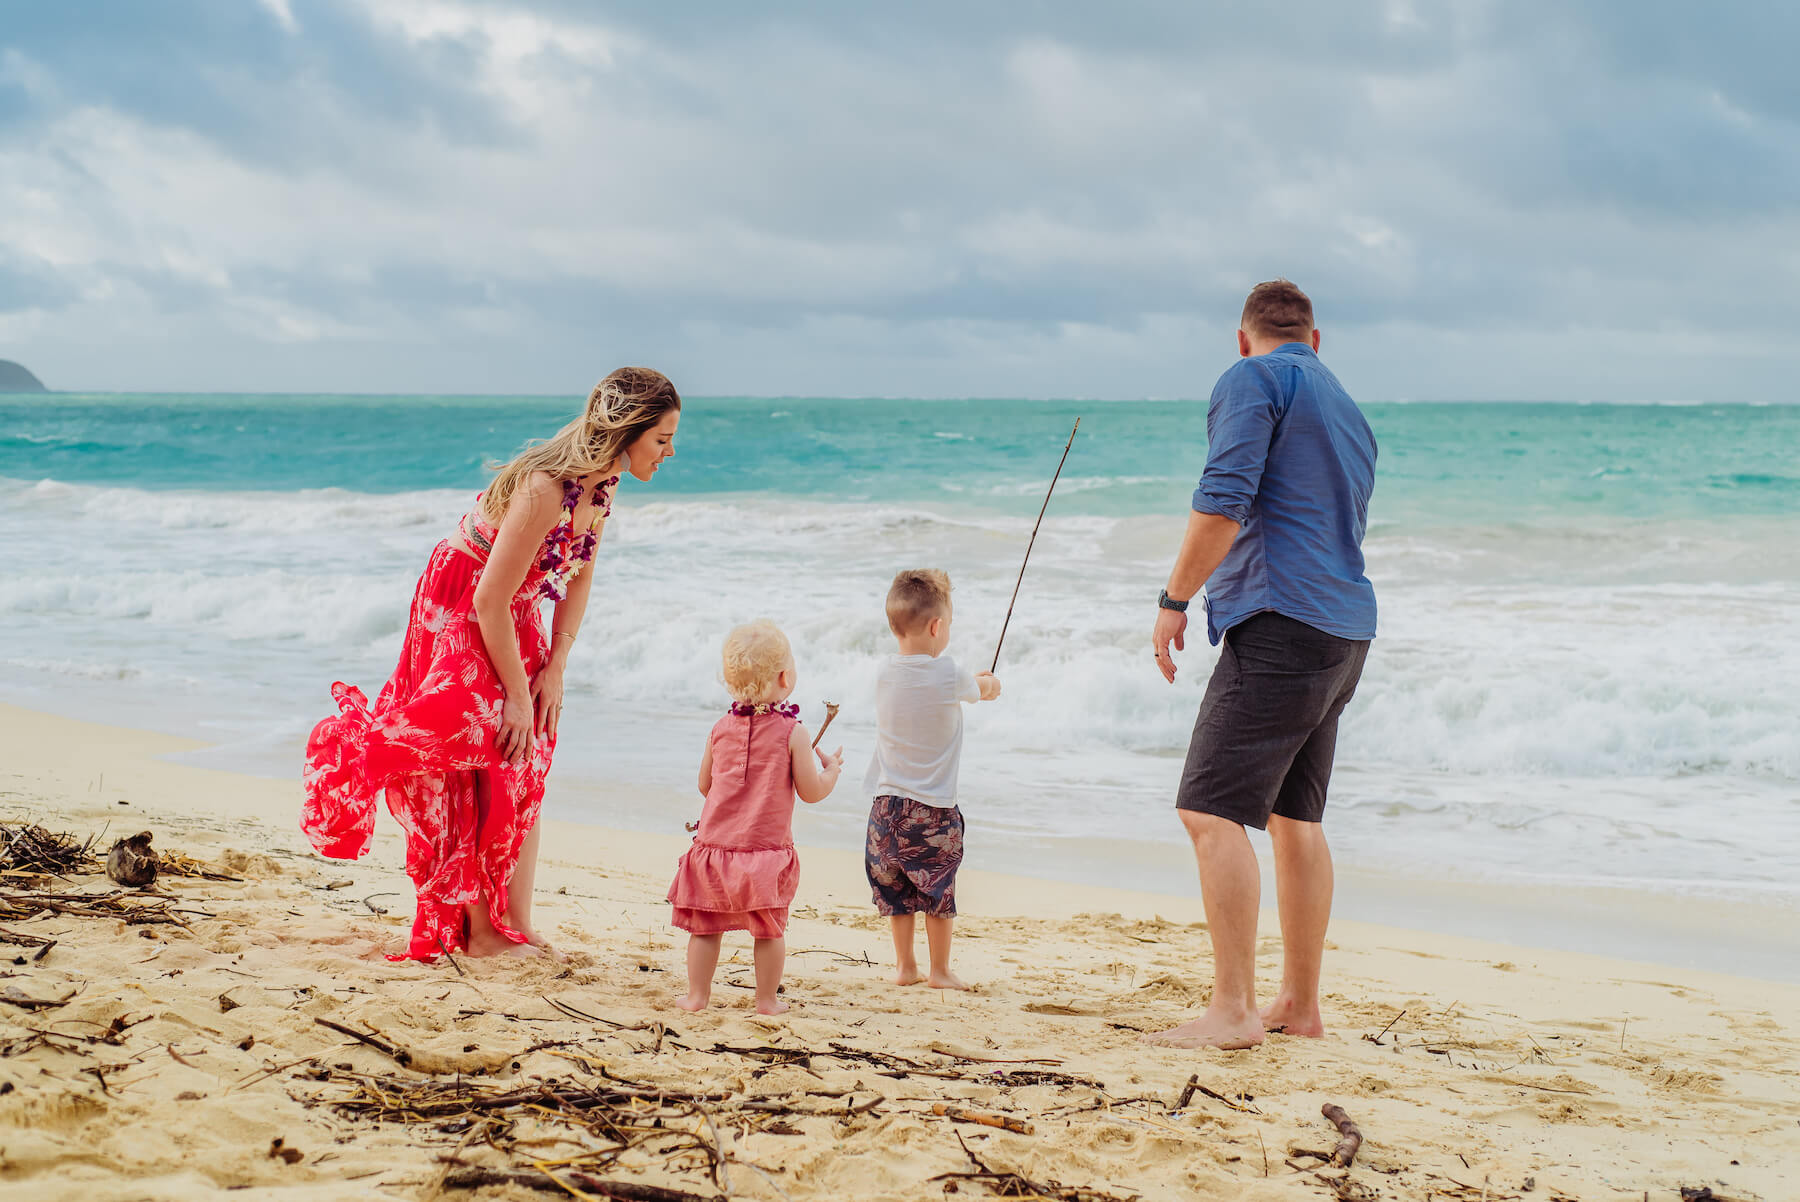 A family fishing in the water and playing on the beach in Honolulu, Hawaii